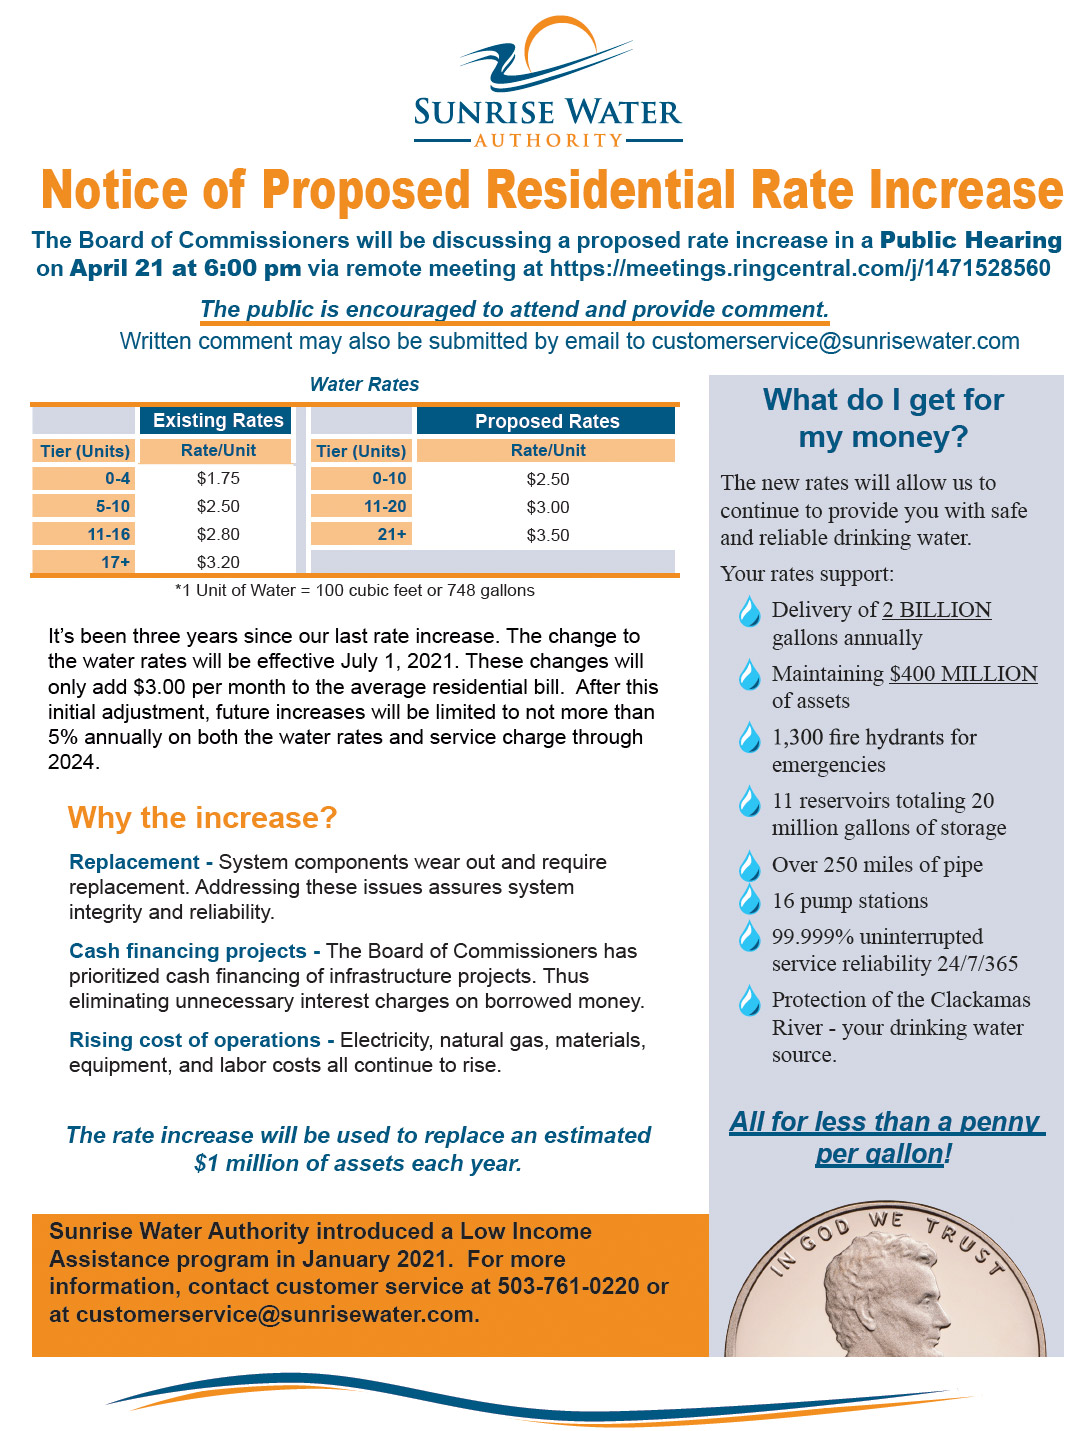 Notice of Proposed Rate Increase for Residential Customers